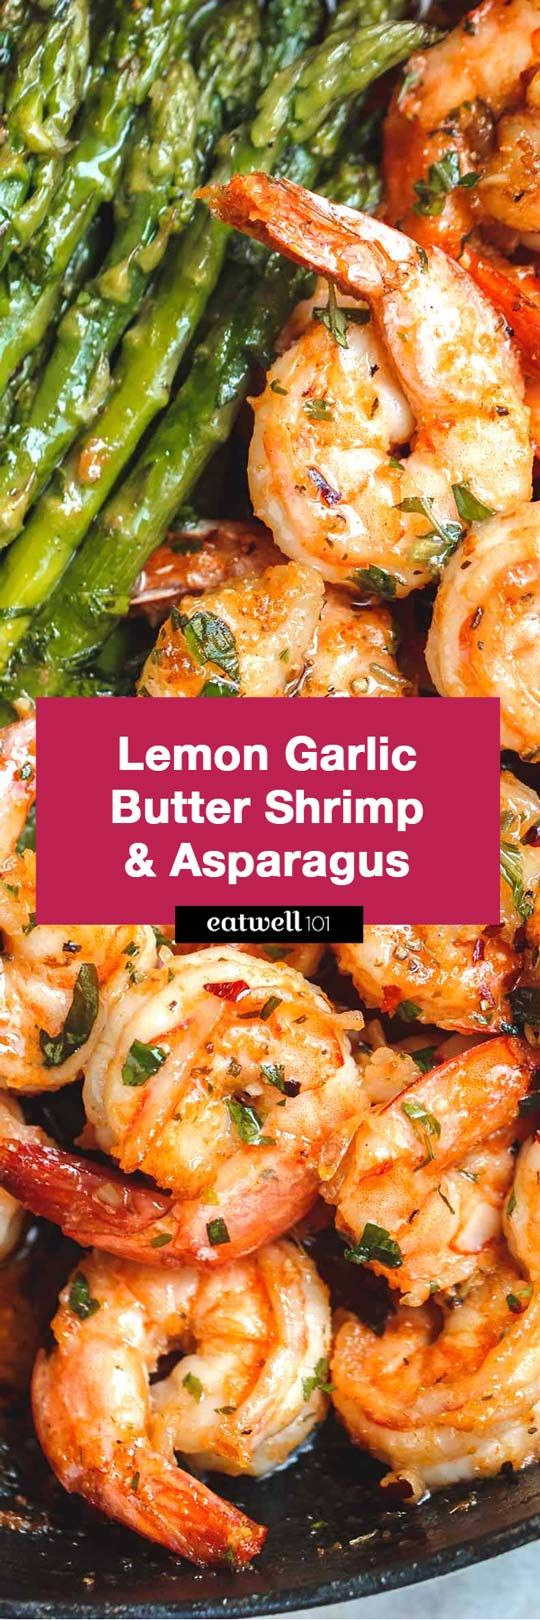 Lemon with - - So much flavor and so easy to throw together, this shrimp is a winner! - by